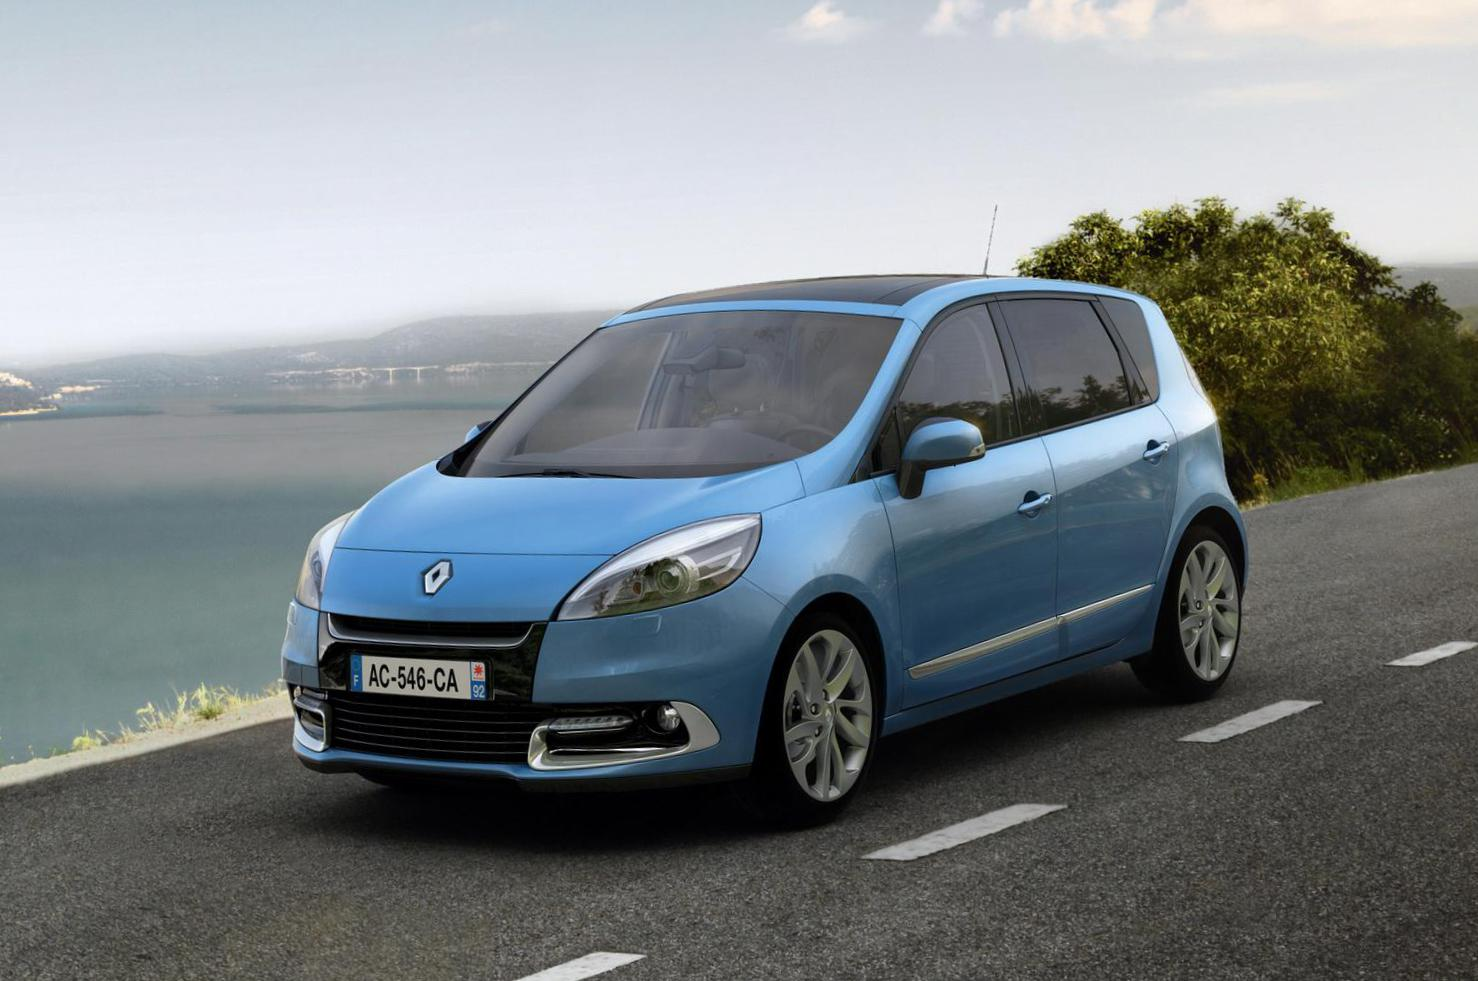 Grand Scenic Renault review 2015